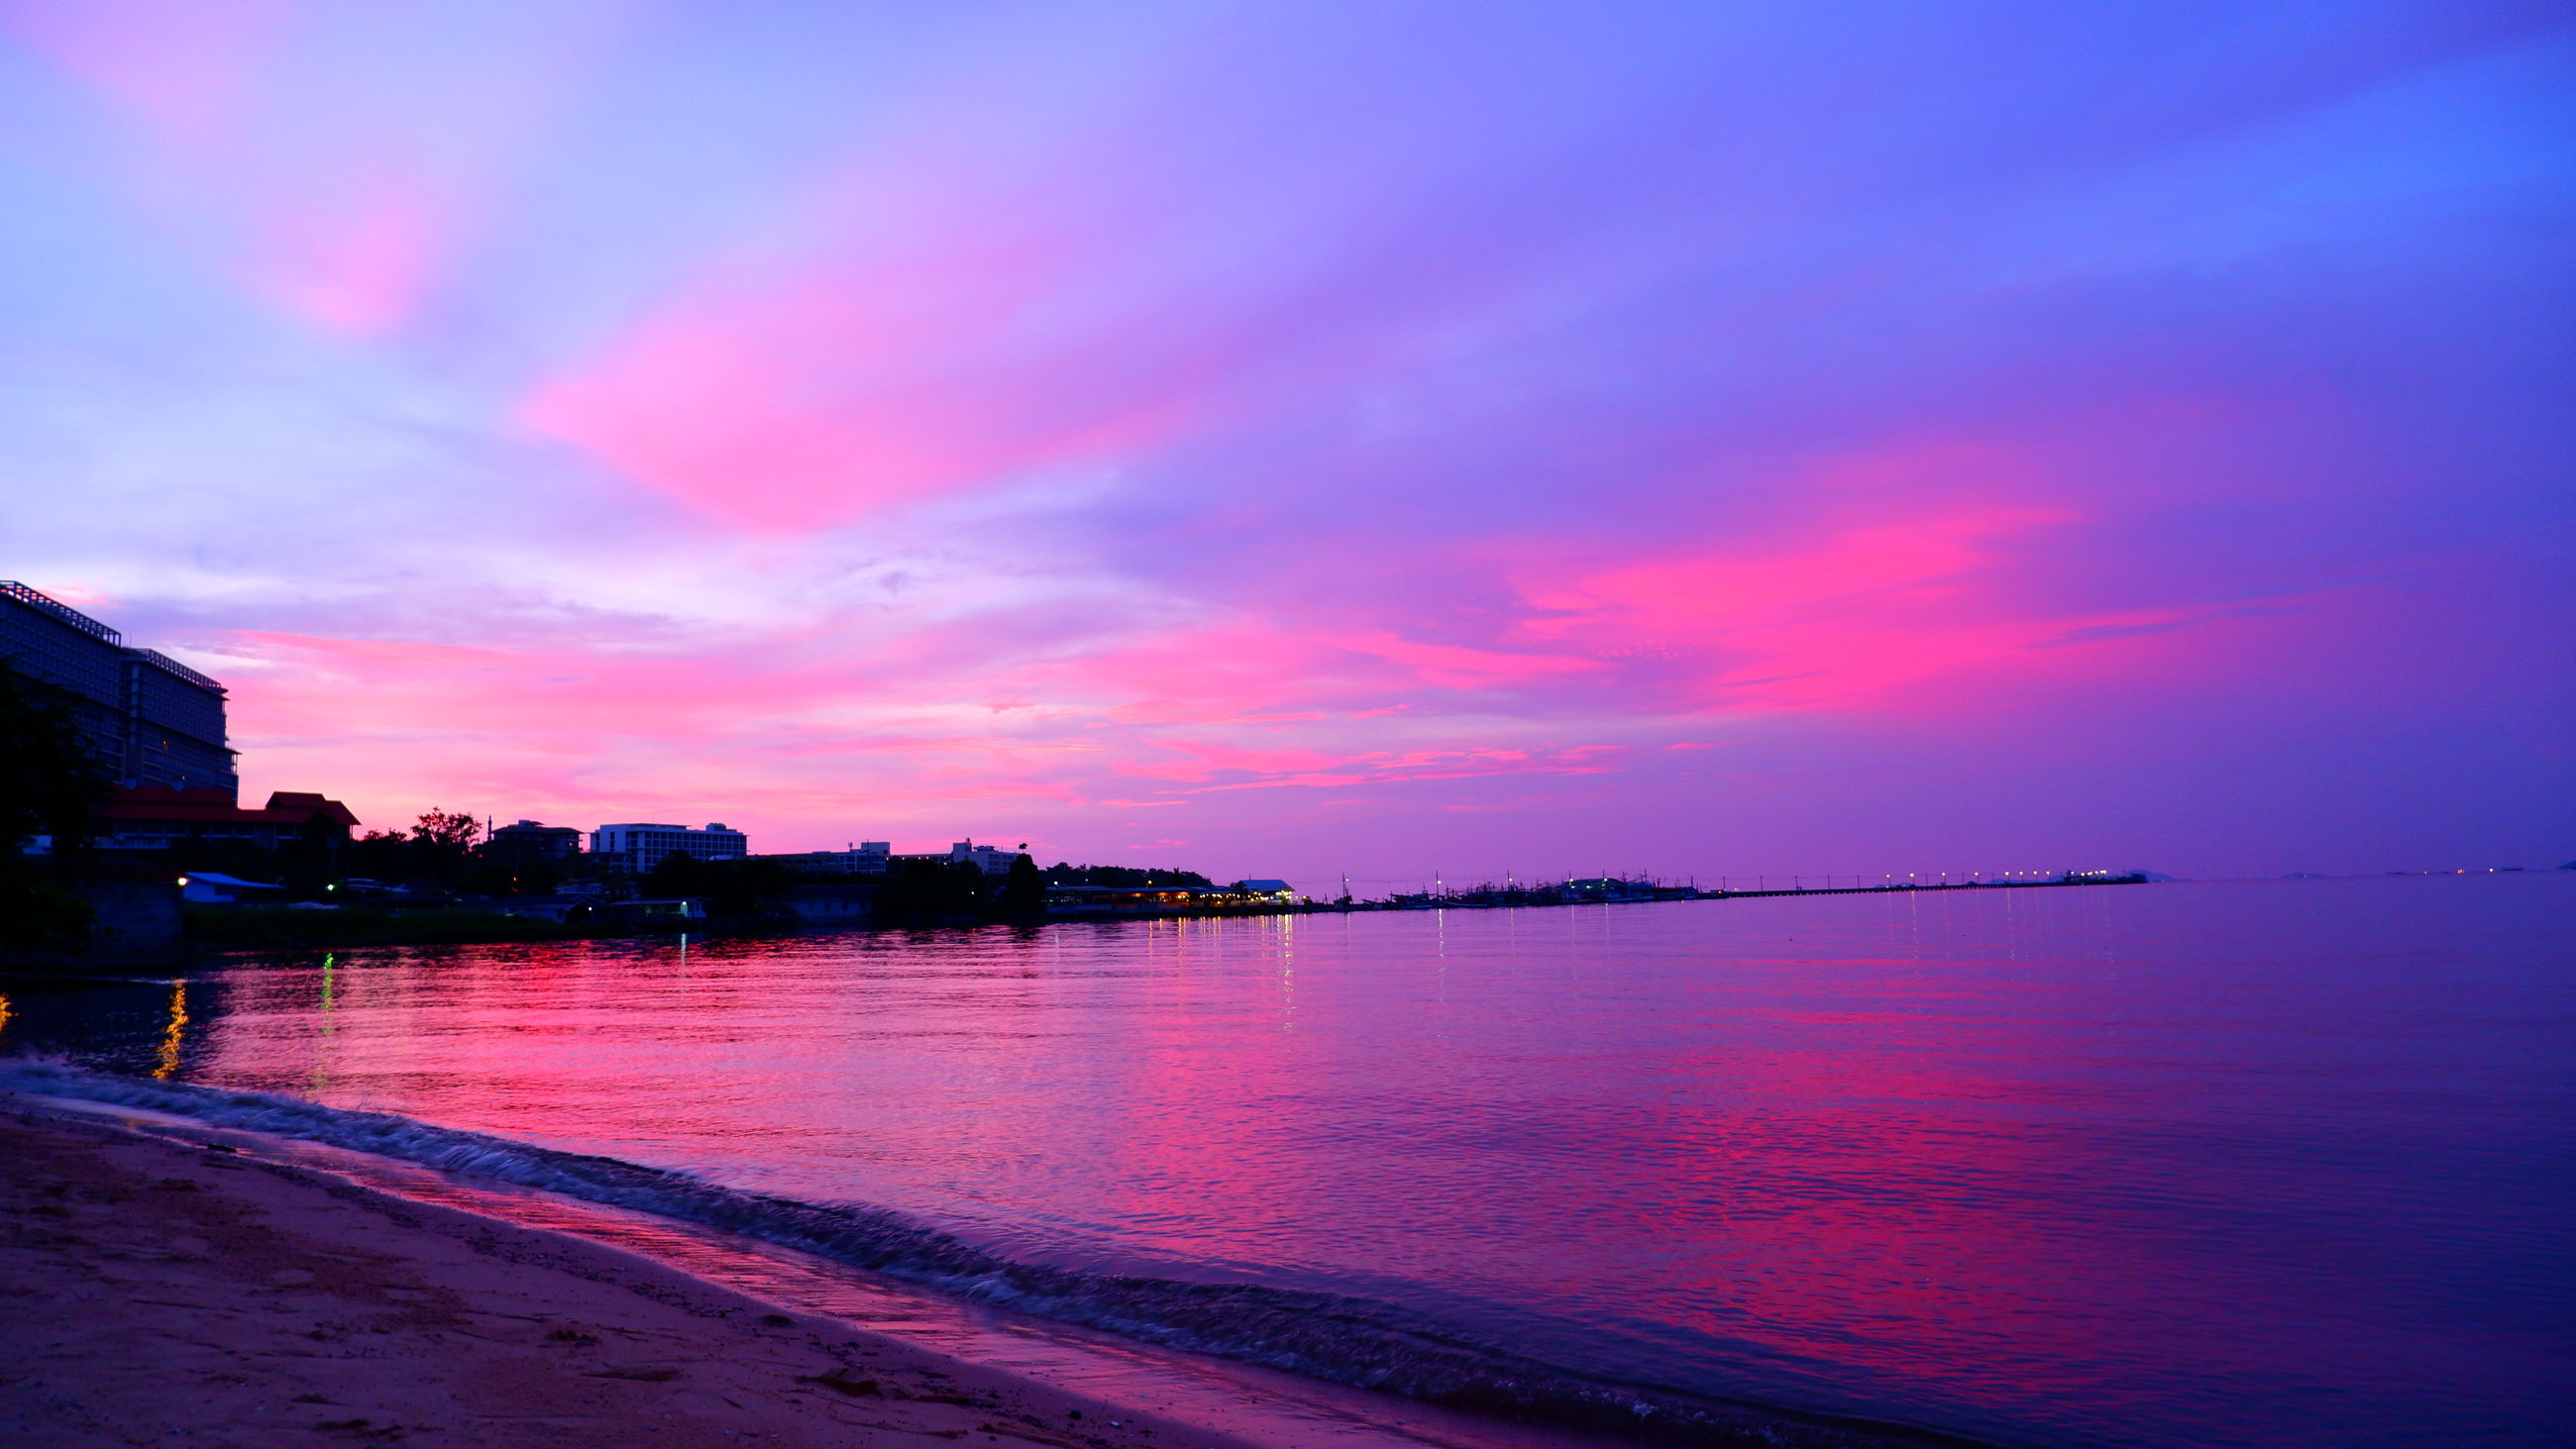 water, sky, sea, sunrise, dawn, horizon, cloud, beauty in nature, beach, scenics - nature, reflection, nature, architecture, afterglow, ocean, land, morning, tranquility, travel destinations, city, built structure, pink, tranquil scene, no people, coast, landscape, outdoors, multi colored, purple, building exterior, travel, idyllic, dramatic sky, environment, building, magenta, sunlight, blue, holiday